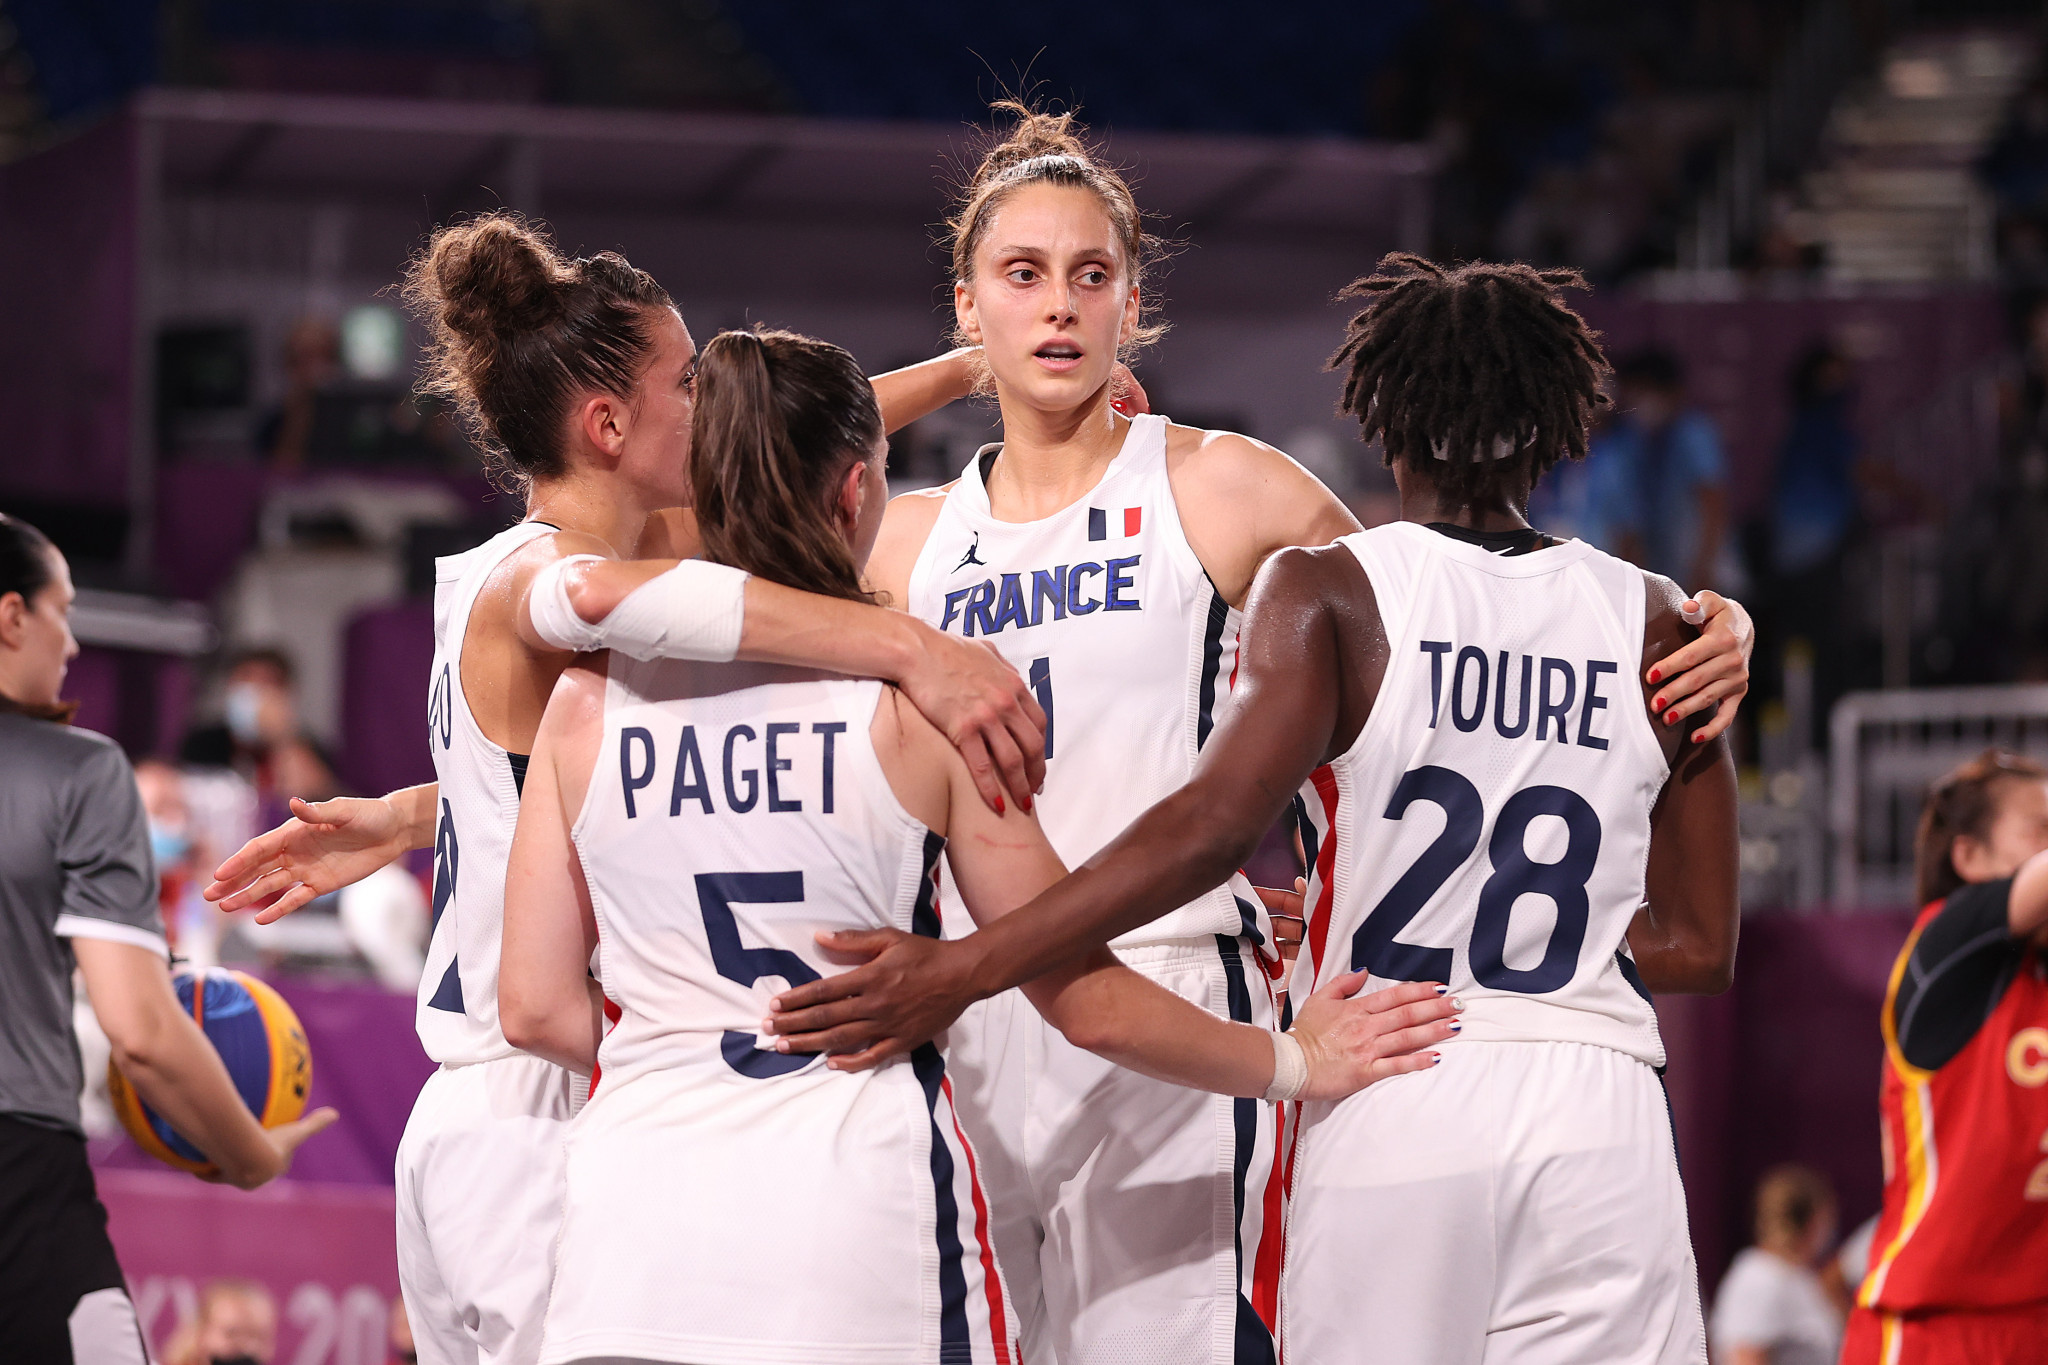 Hosts France are the women's FIBA 3x3 Europe Cup holders, but missed out on a medal at Tokyo 2020 ©Getty Images